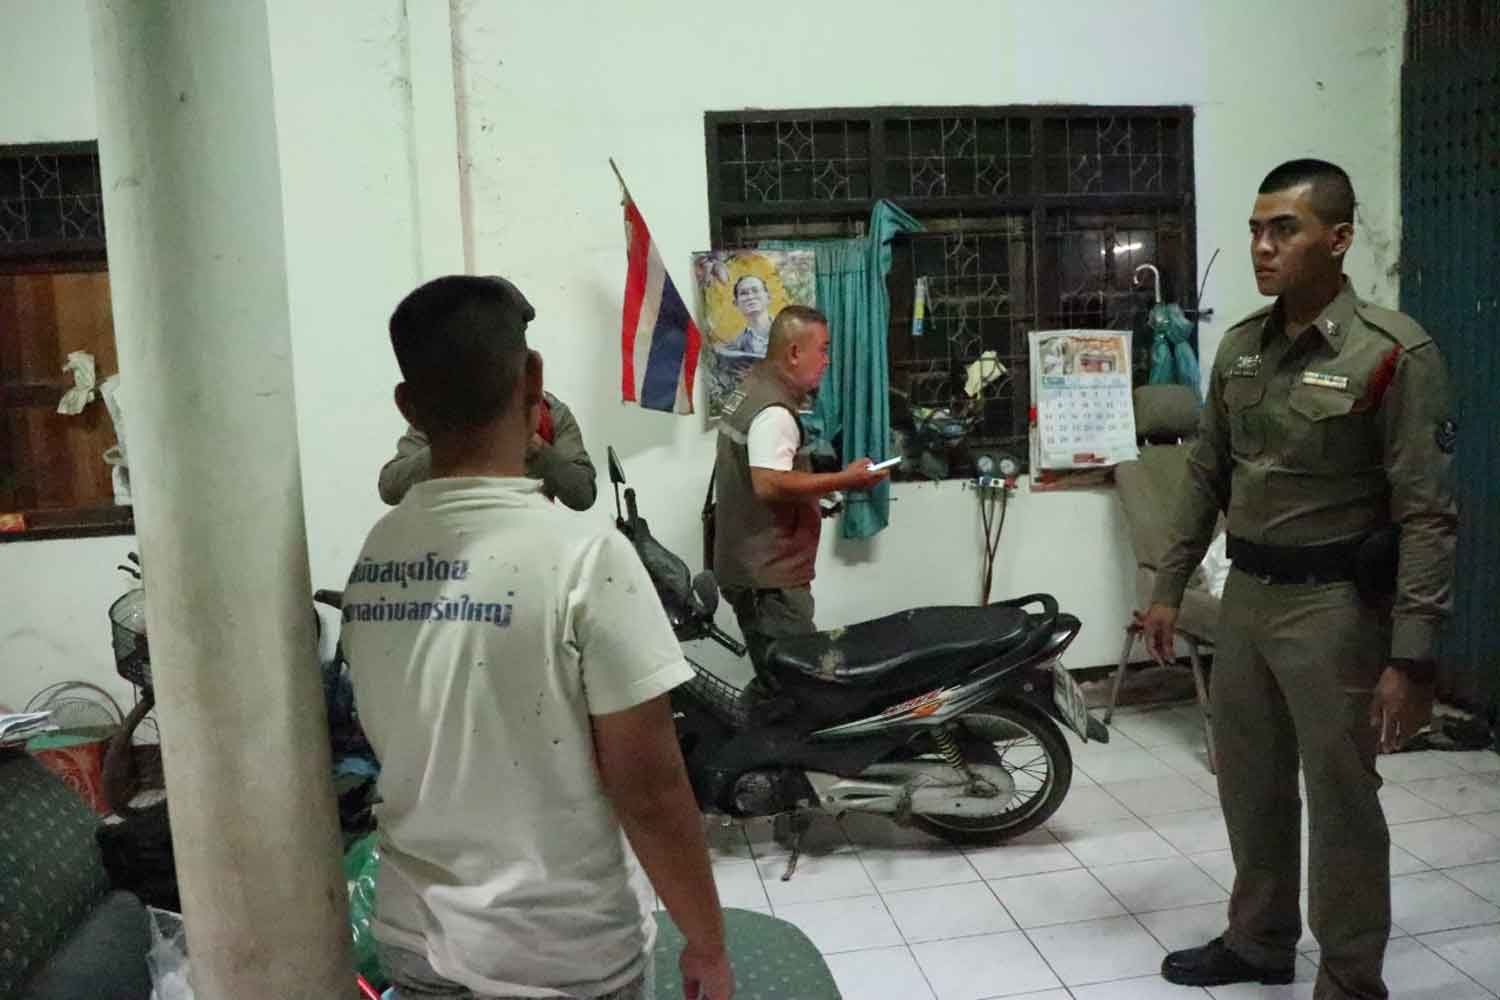 Police at the house in Moo 5 village, tambon Krab Yai in Ratchaburi's Ban Pong district, where a 15-year-old boy stabbed his father to death on Monday evening. (Photo: Saichol Srinuanchan)